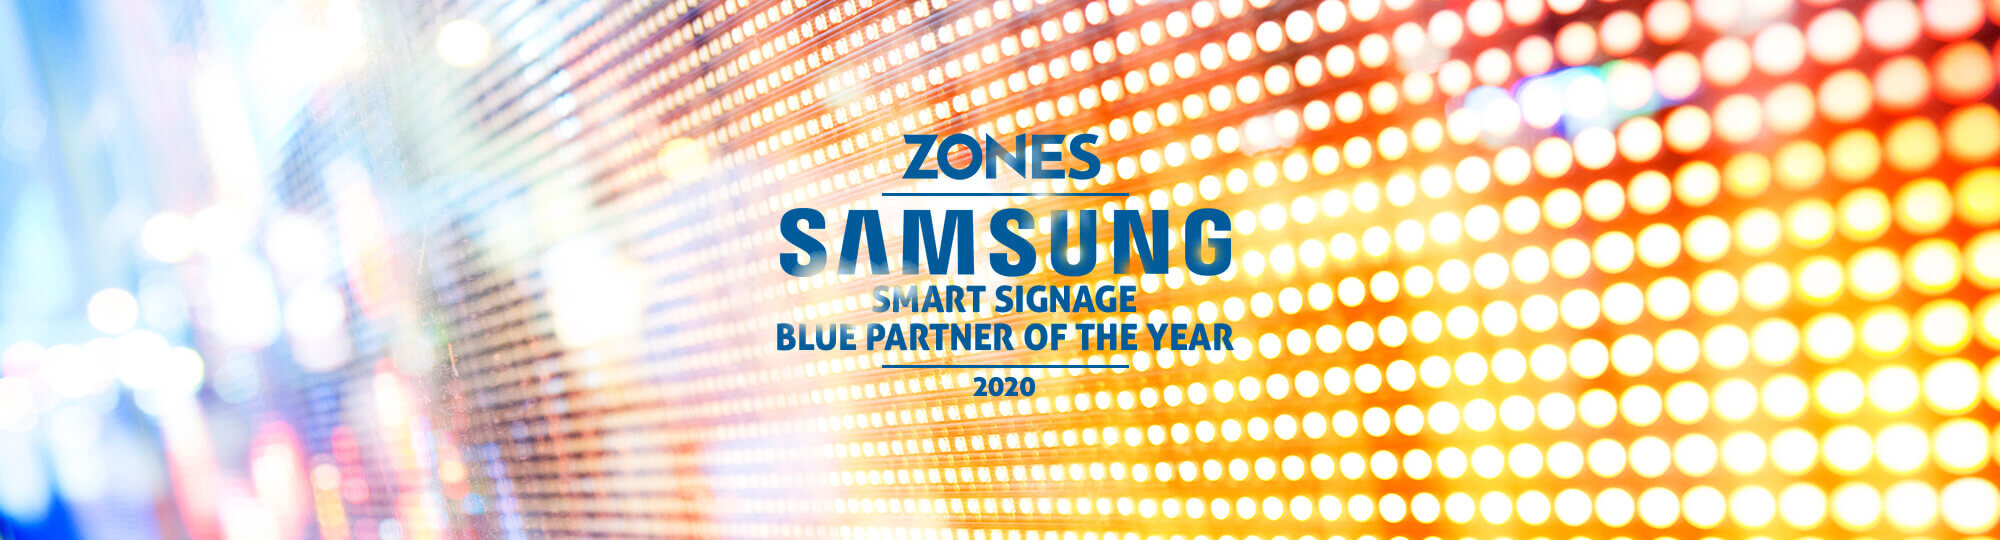 Zones: 2020 Samsung Smart Signage Blue Partner of the Year